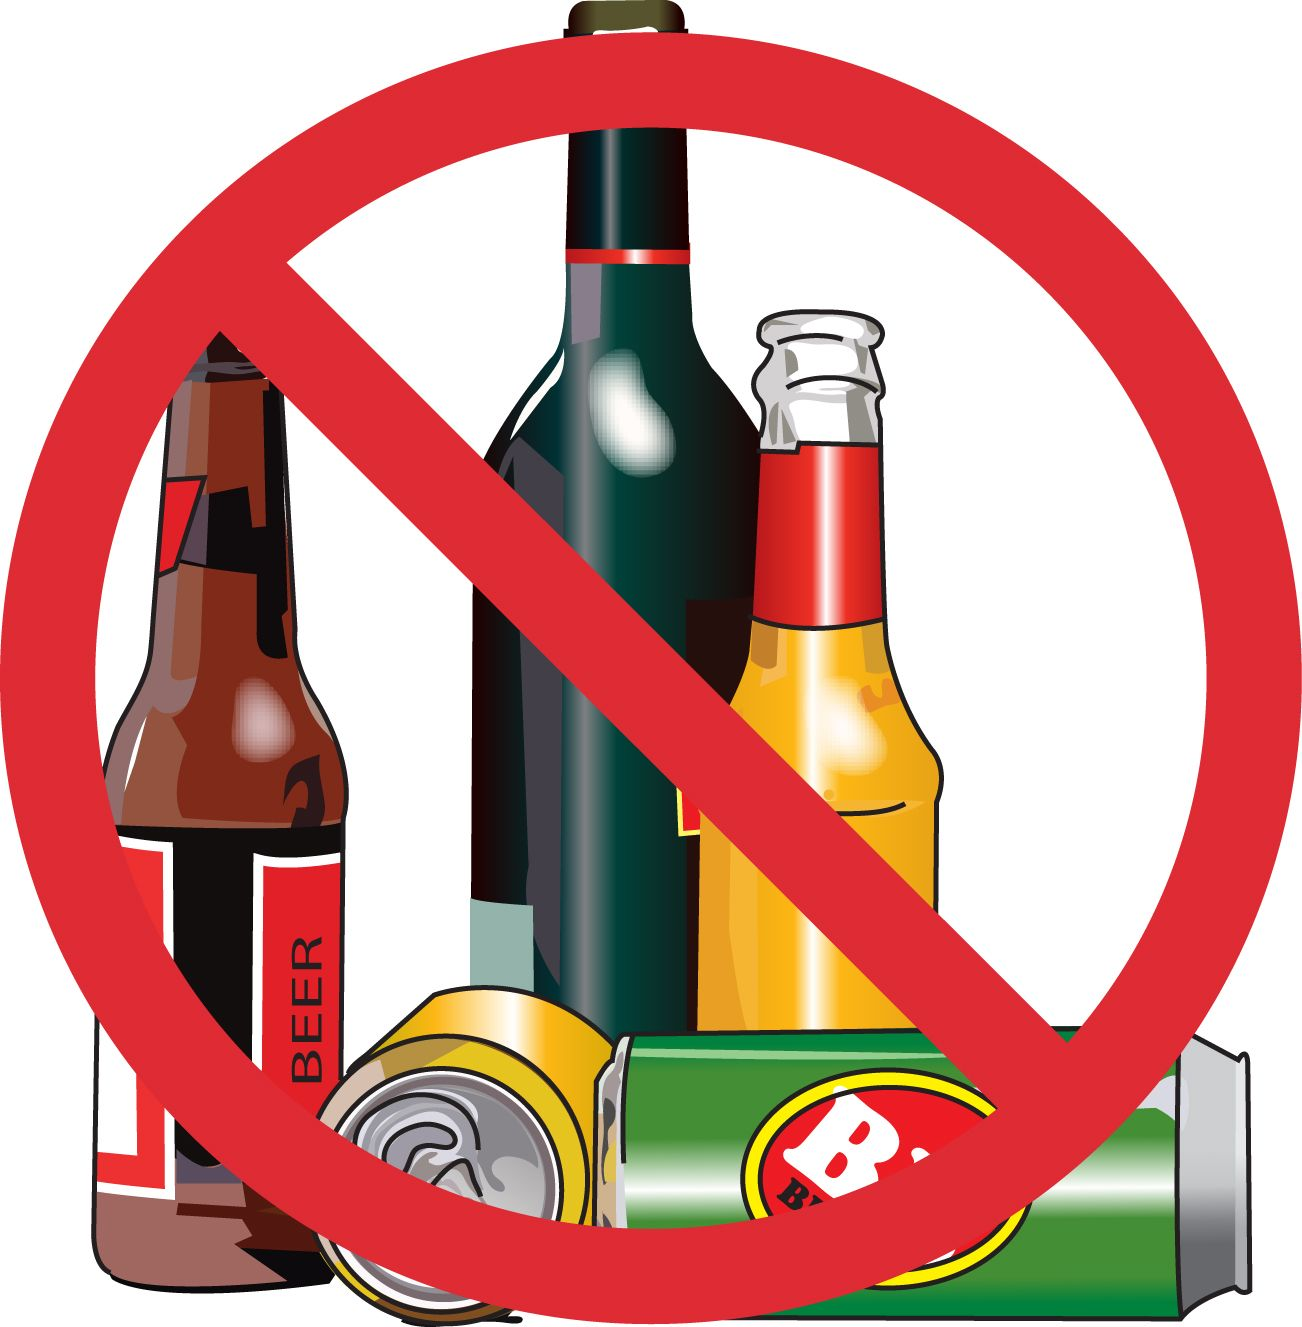 Beer clipart binge drinking. Clear communication by parents